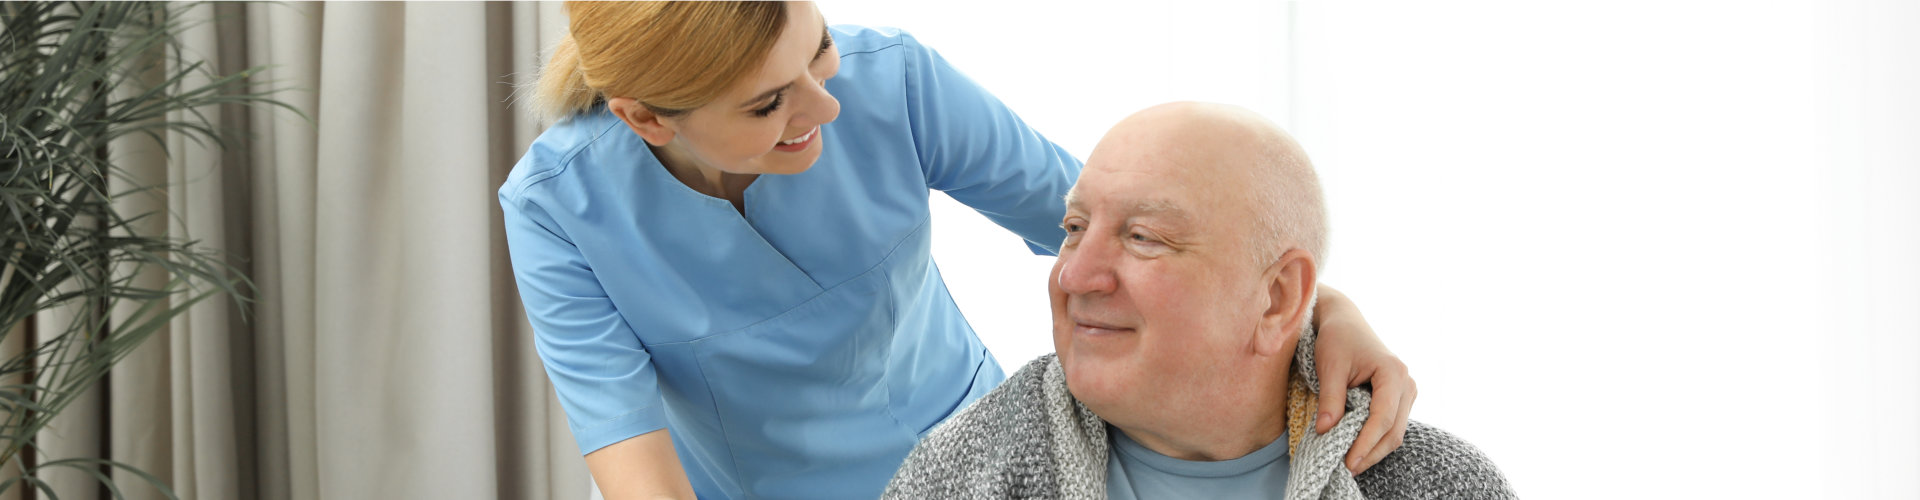 caregiver smiling with her senior patient